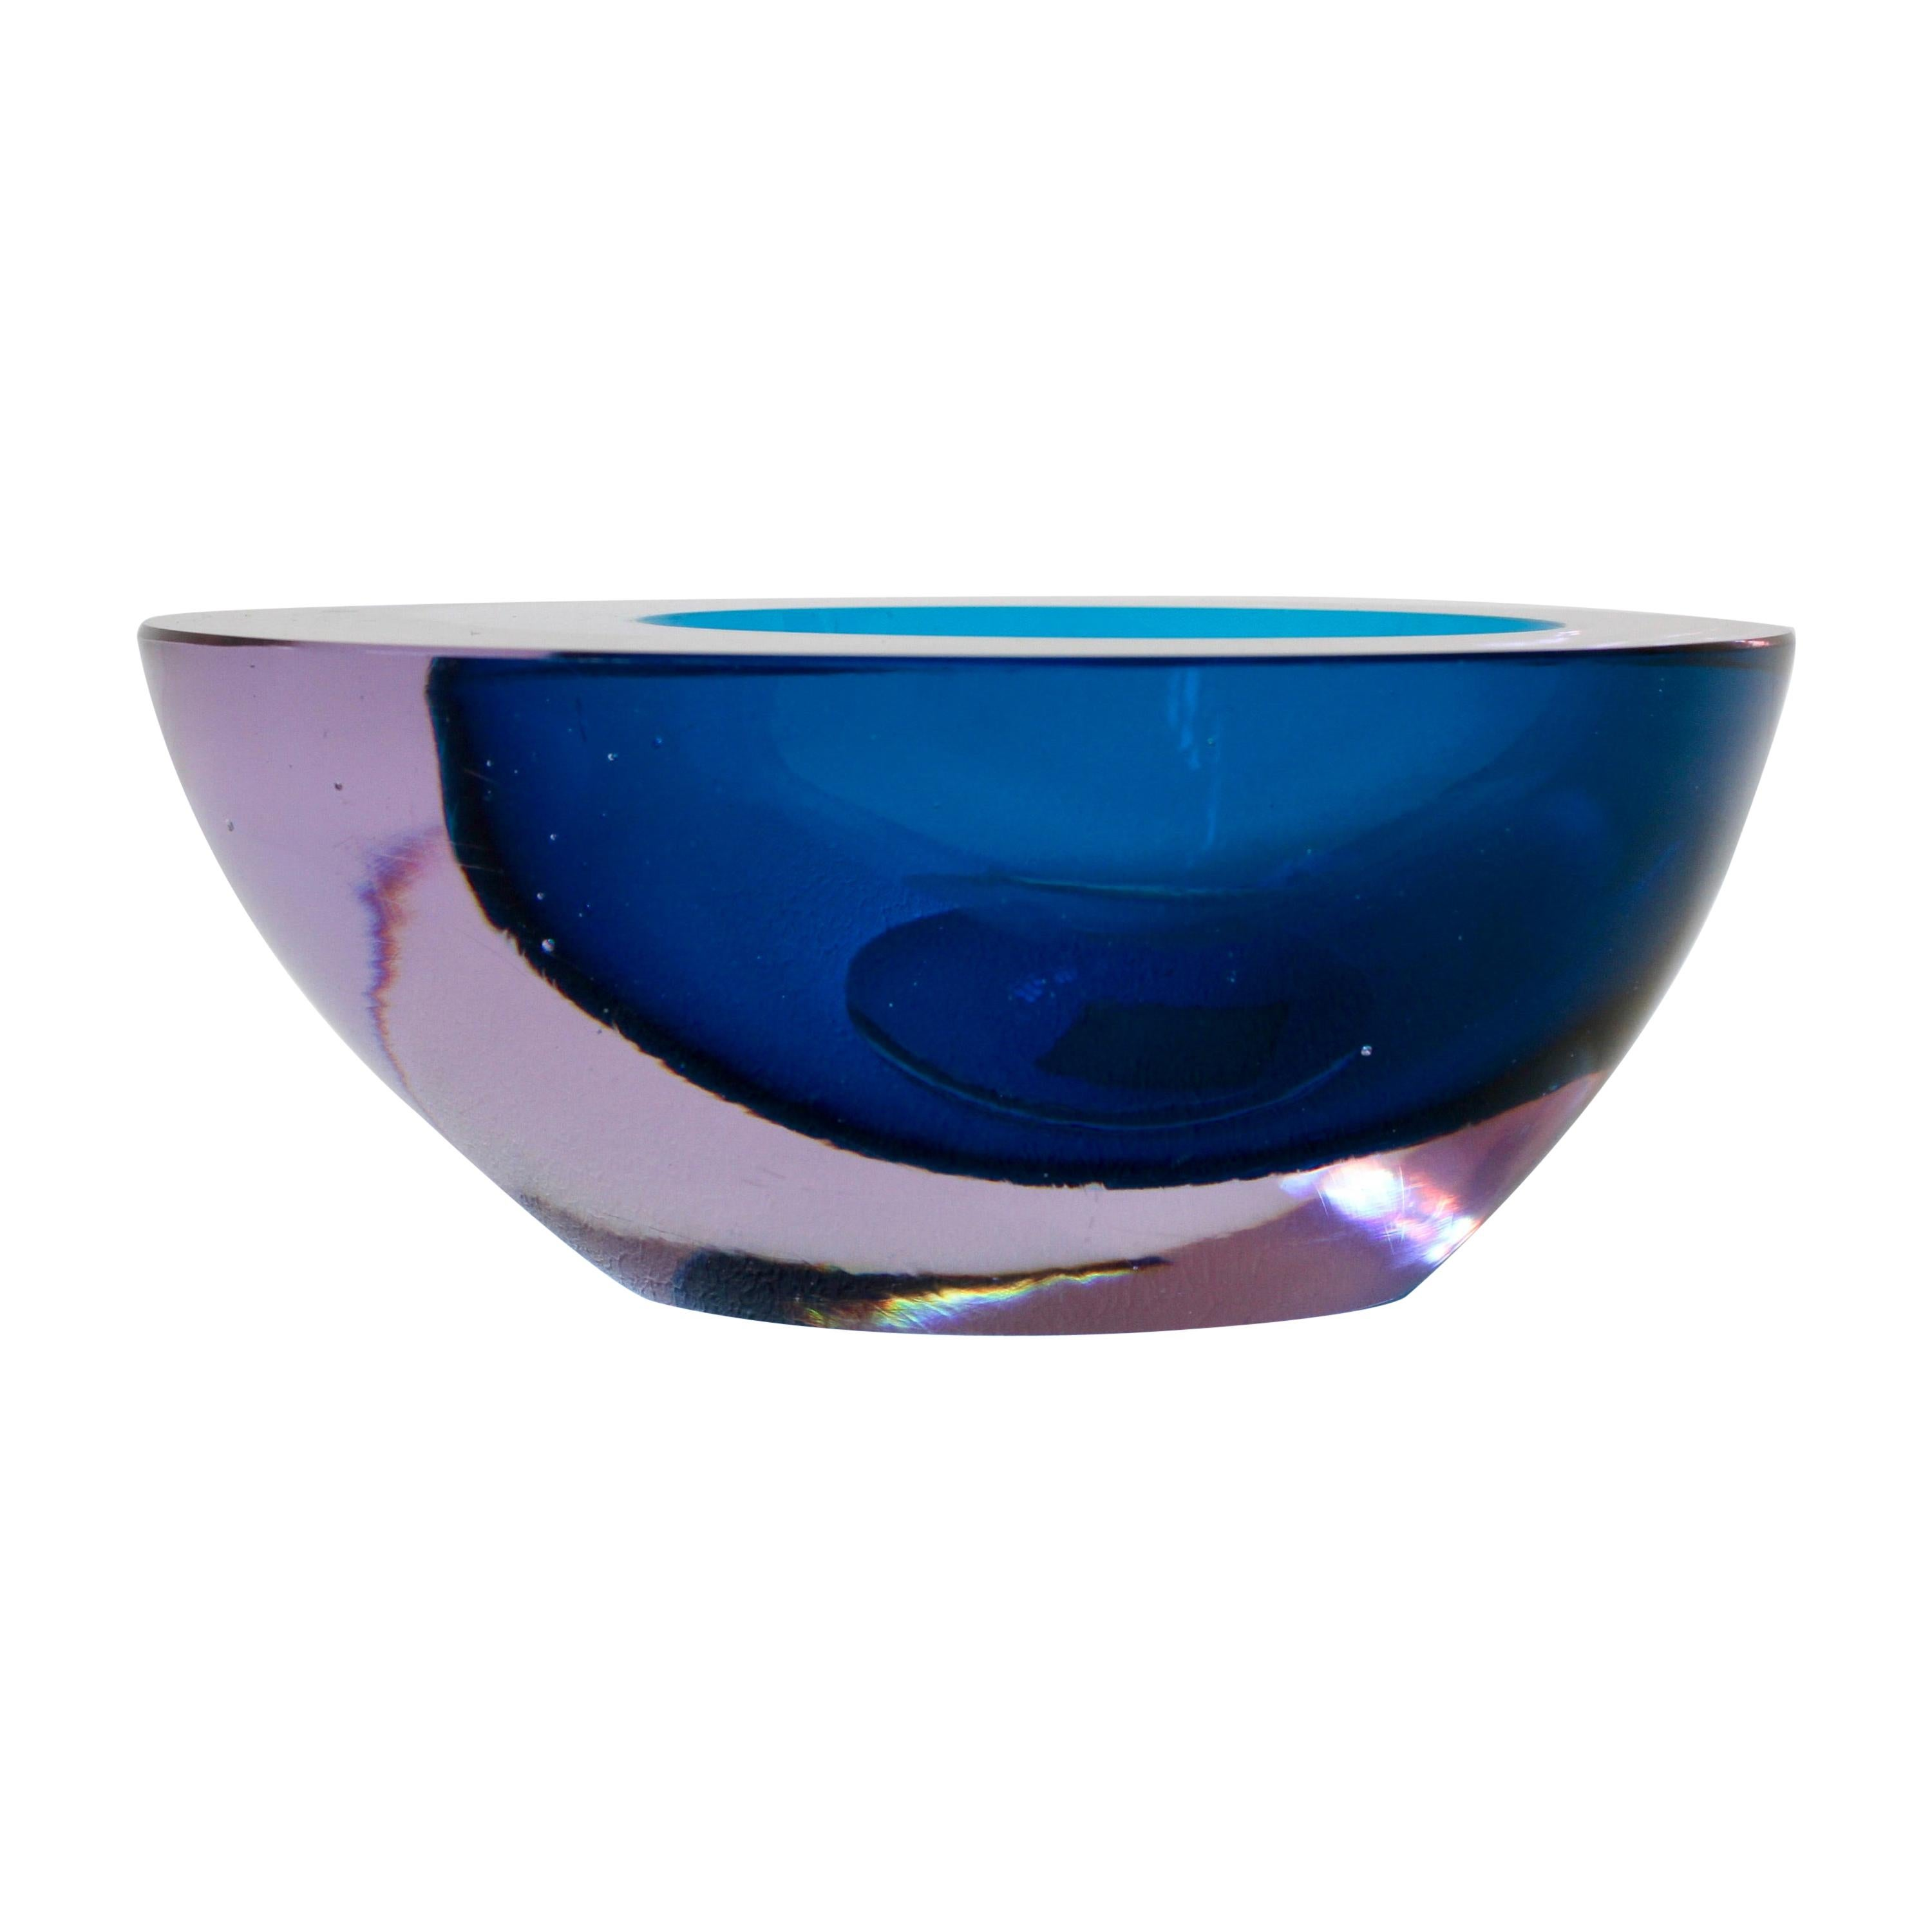 Large Italian Alexandrite and Blue Sommerso Murano Glass Bowl, Dish or Ashtray